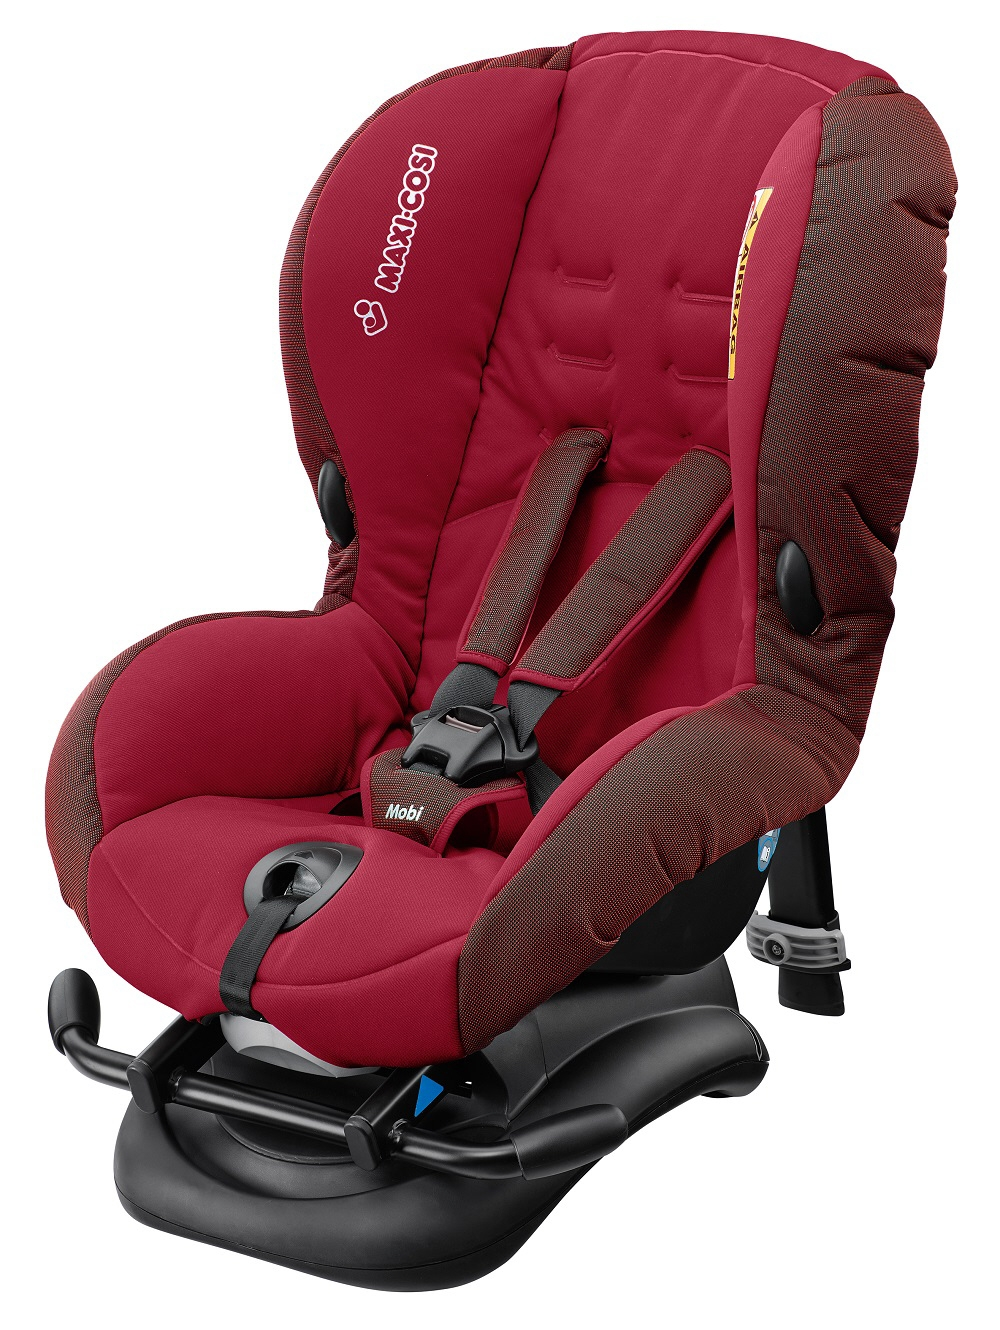 maxi cosi child car seat mobi 2015 carmine buy at kidsroom campaigns. Black Bedroom Furniture Sets. Home Design Ideas